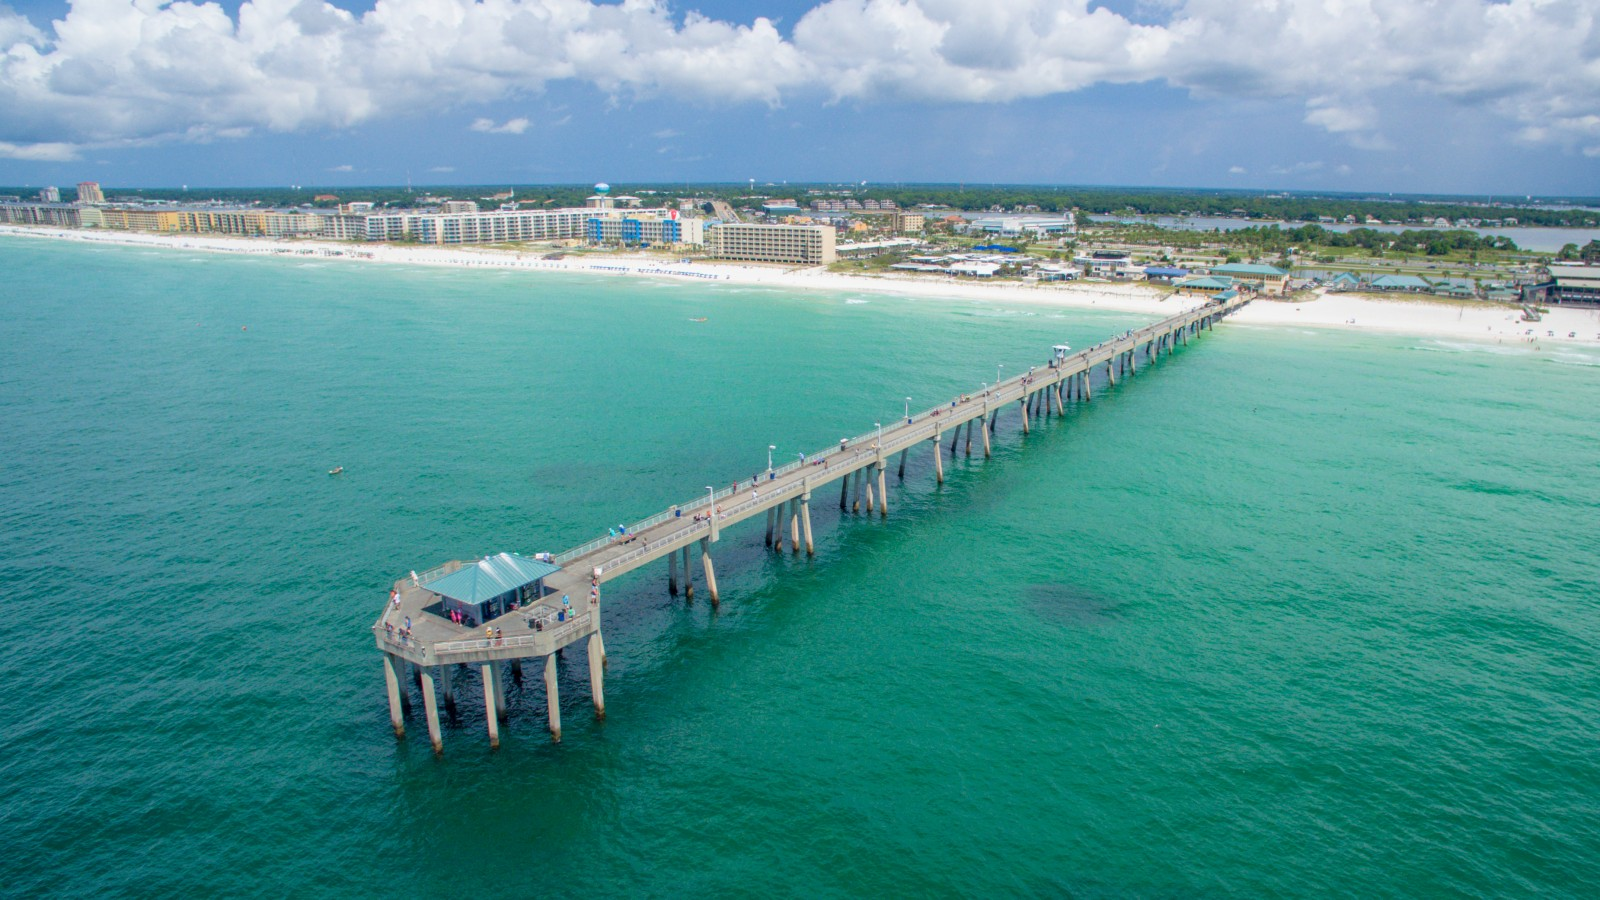 fort walton beach destin vacation packages travel deals 2020 package save up to 583 travelhoteltours fort walton beach destin vacation